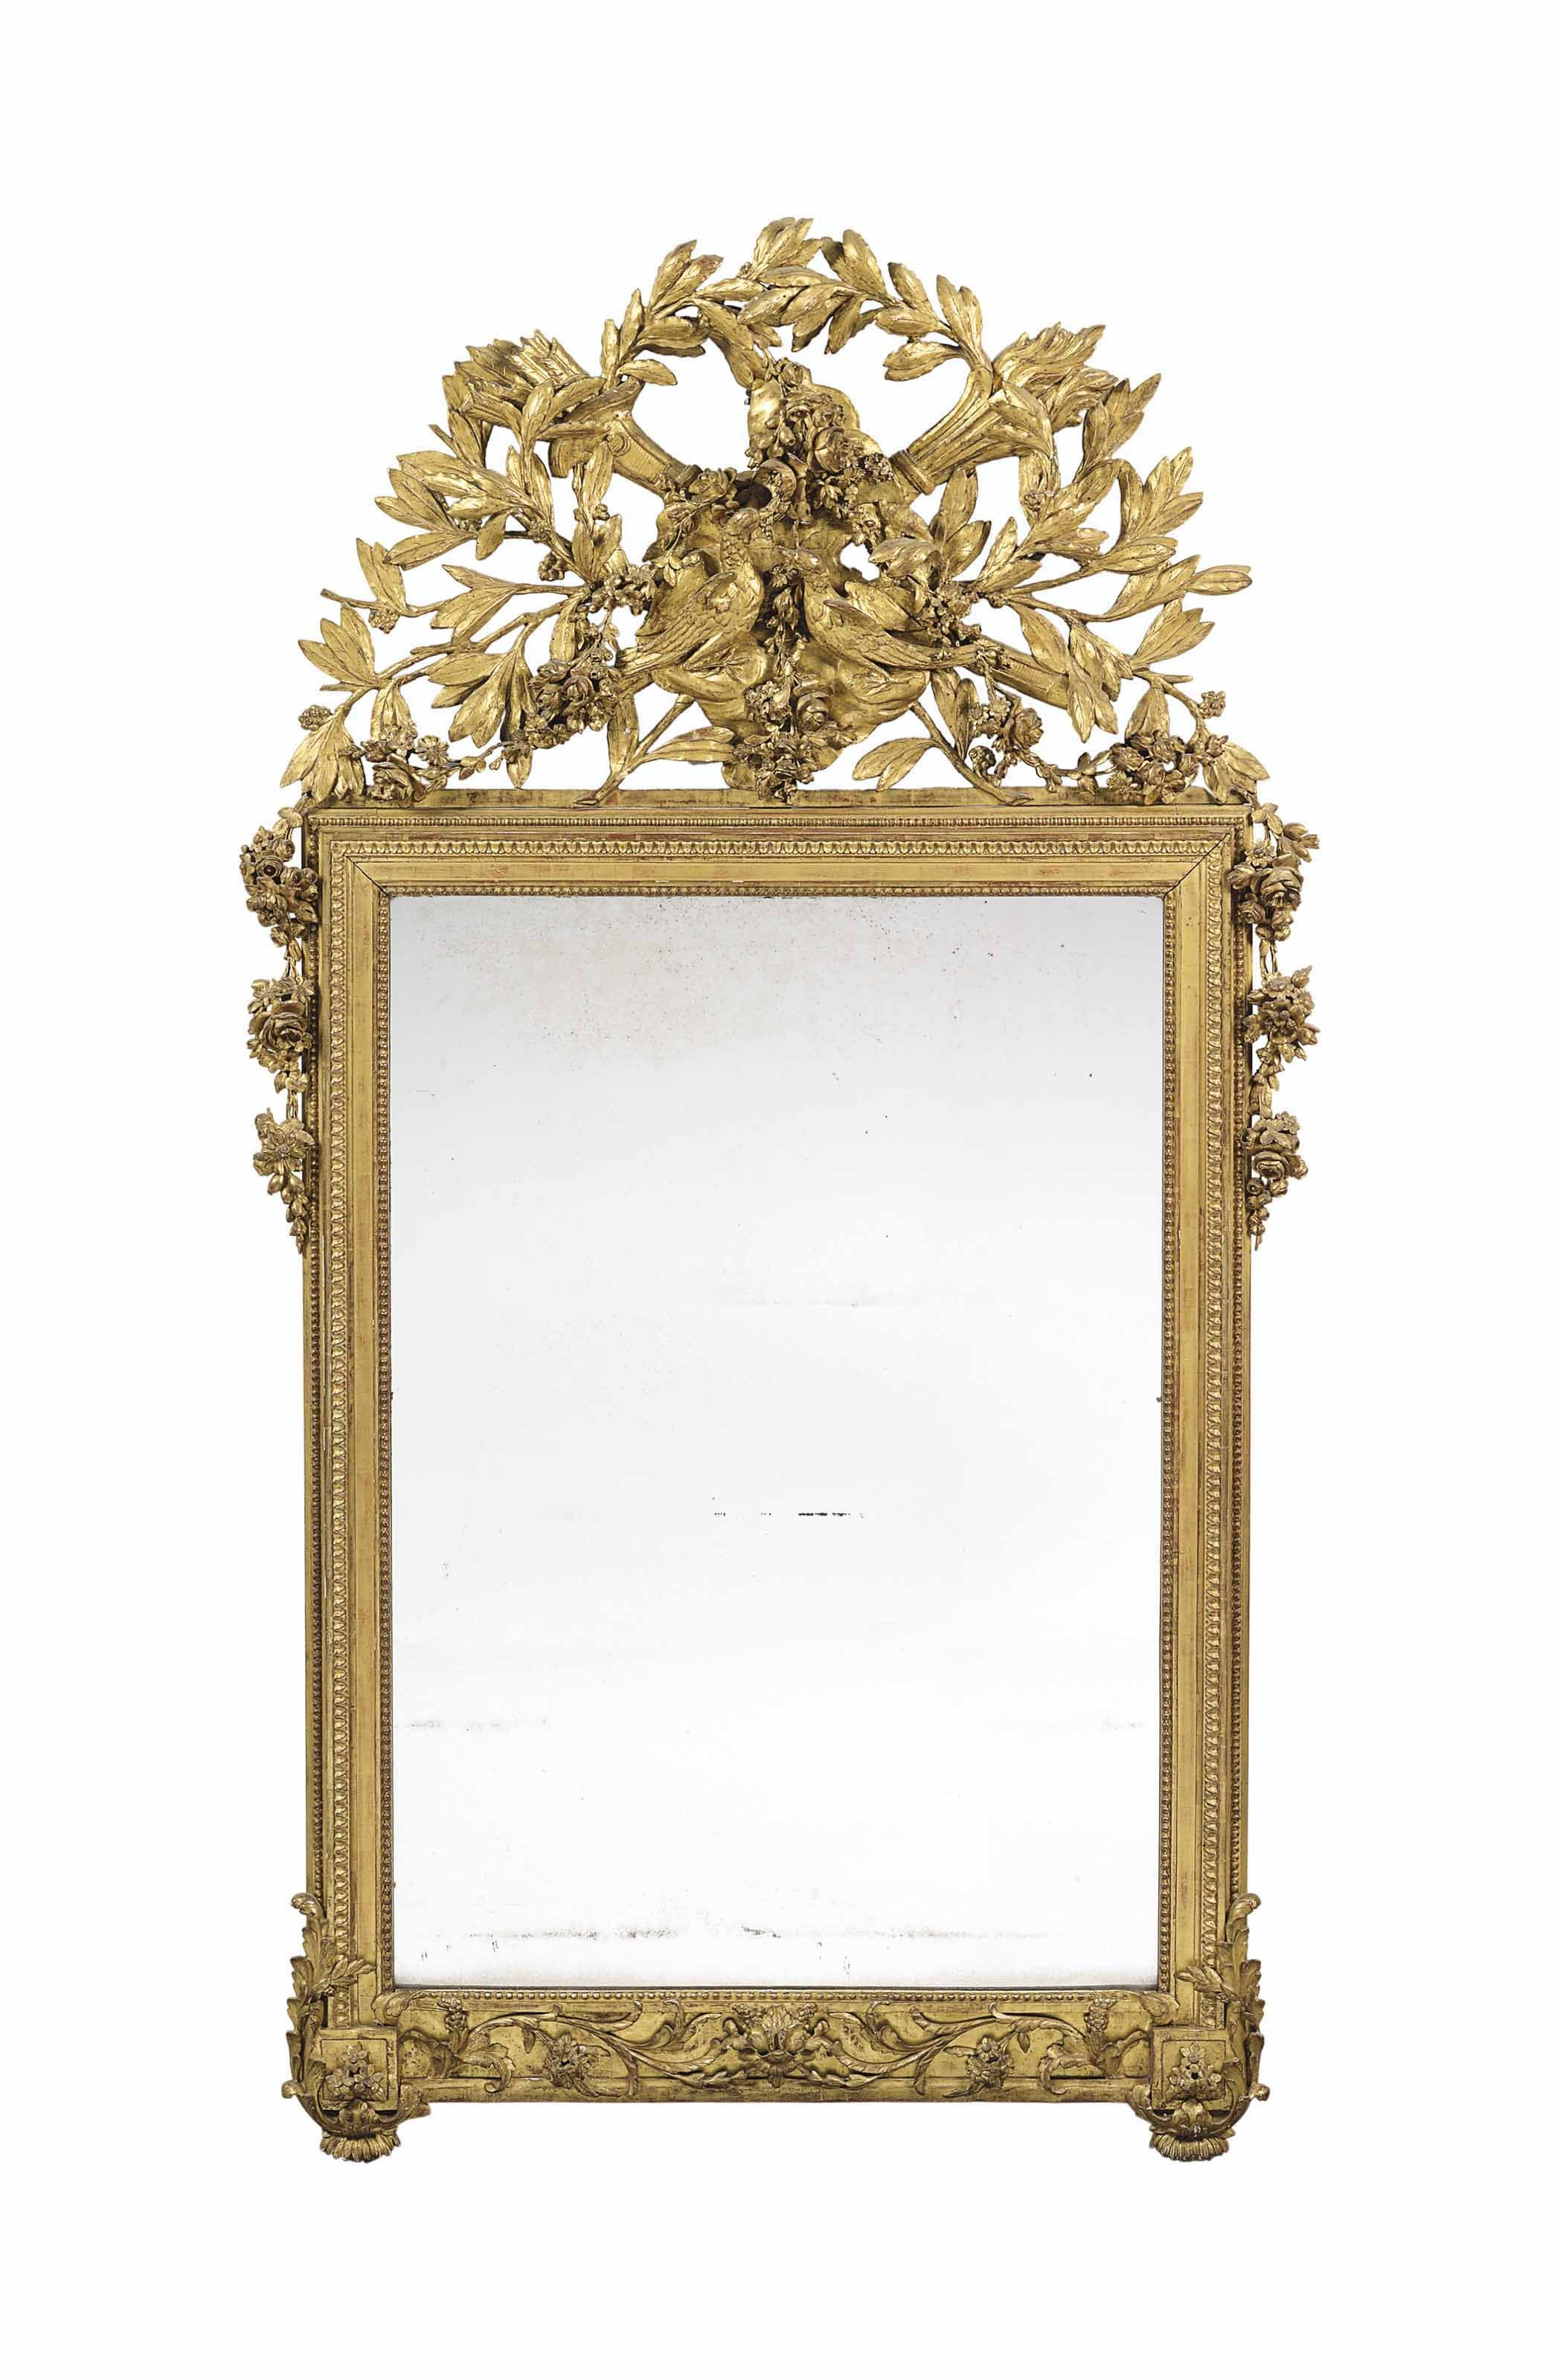 Introduction to Antique Mirrors